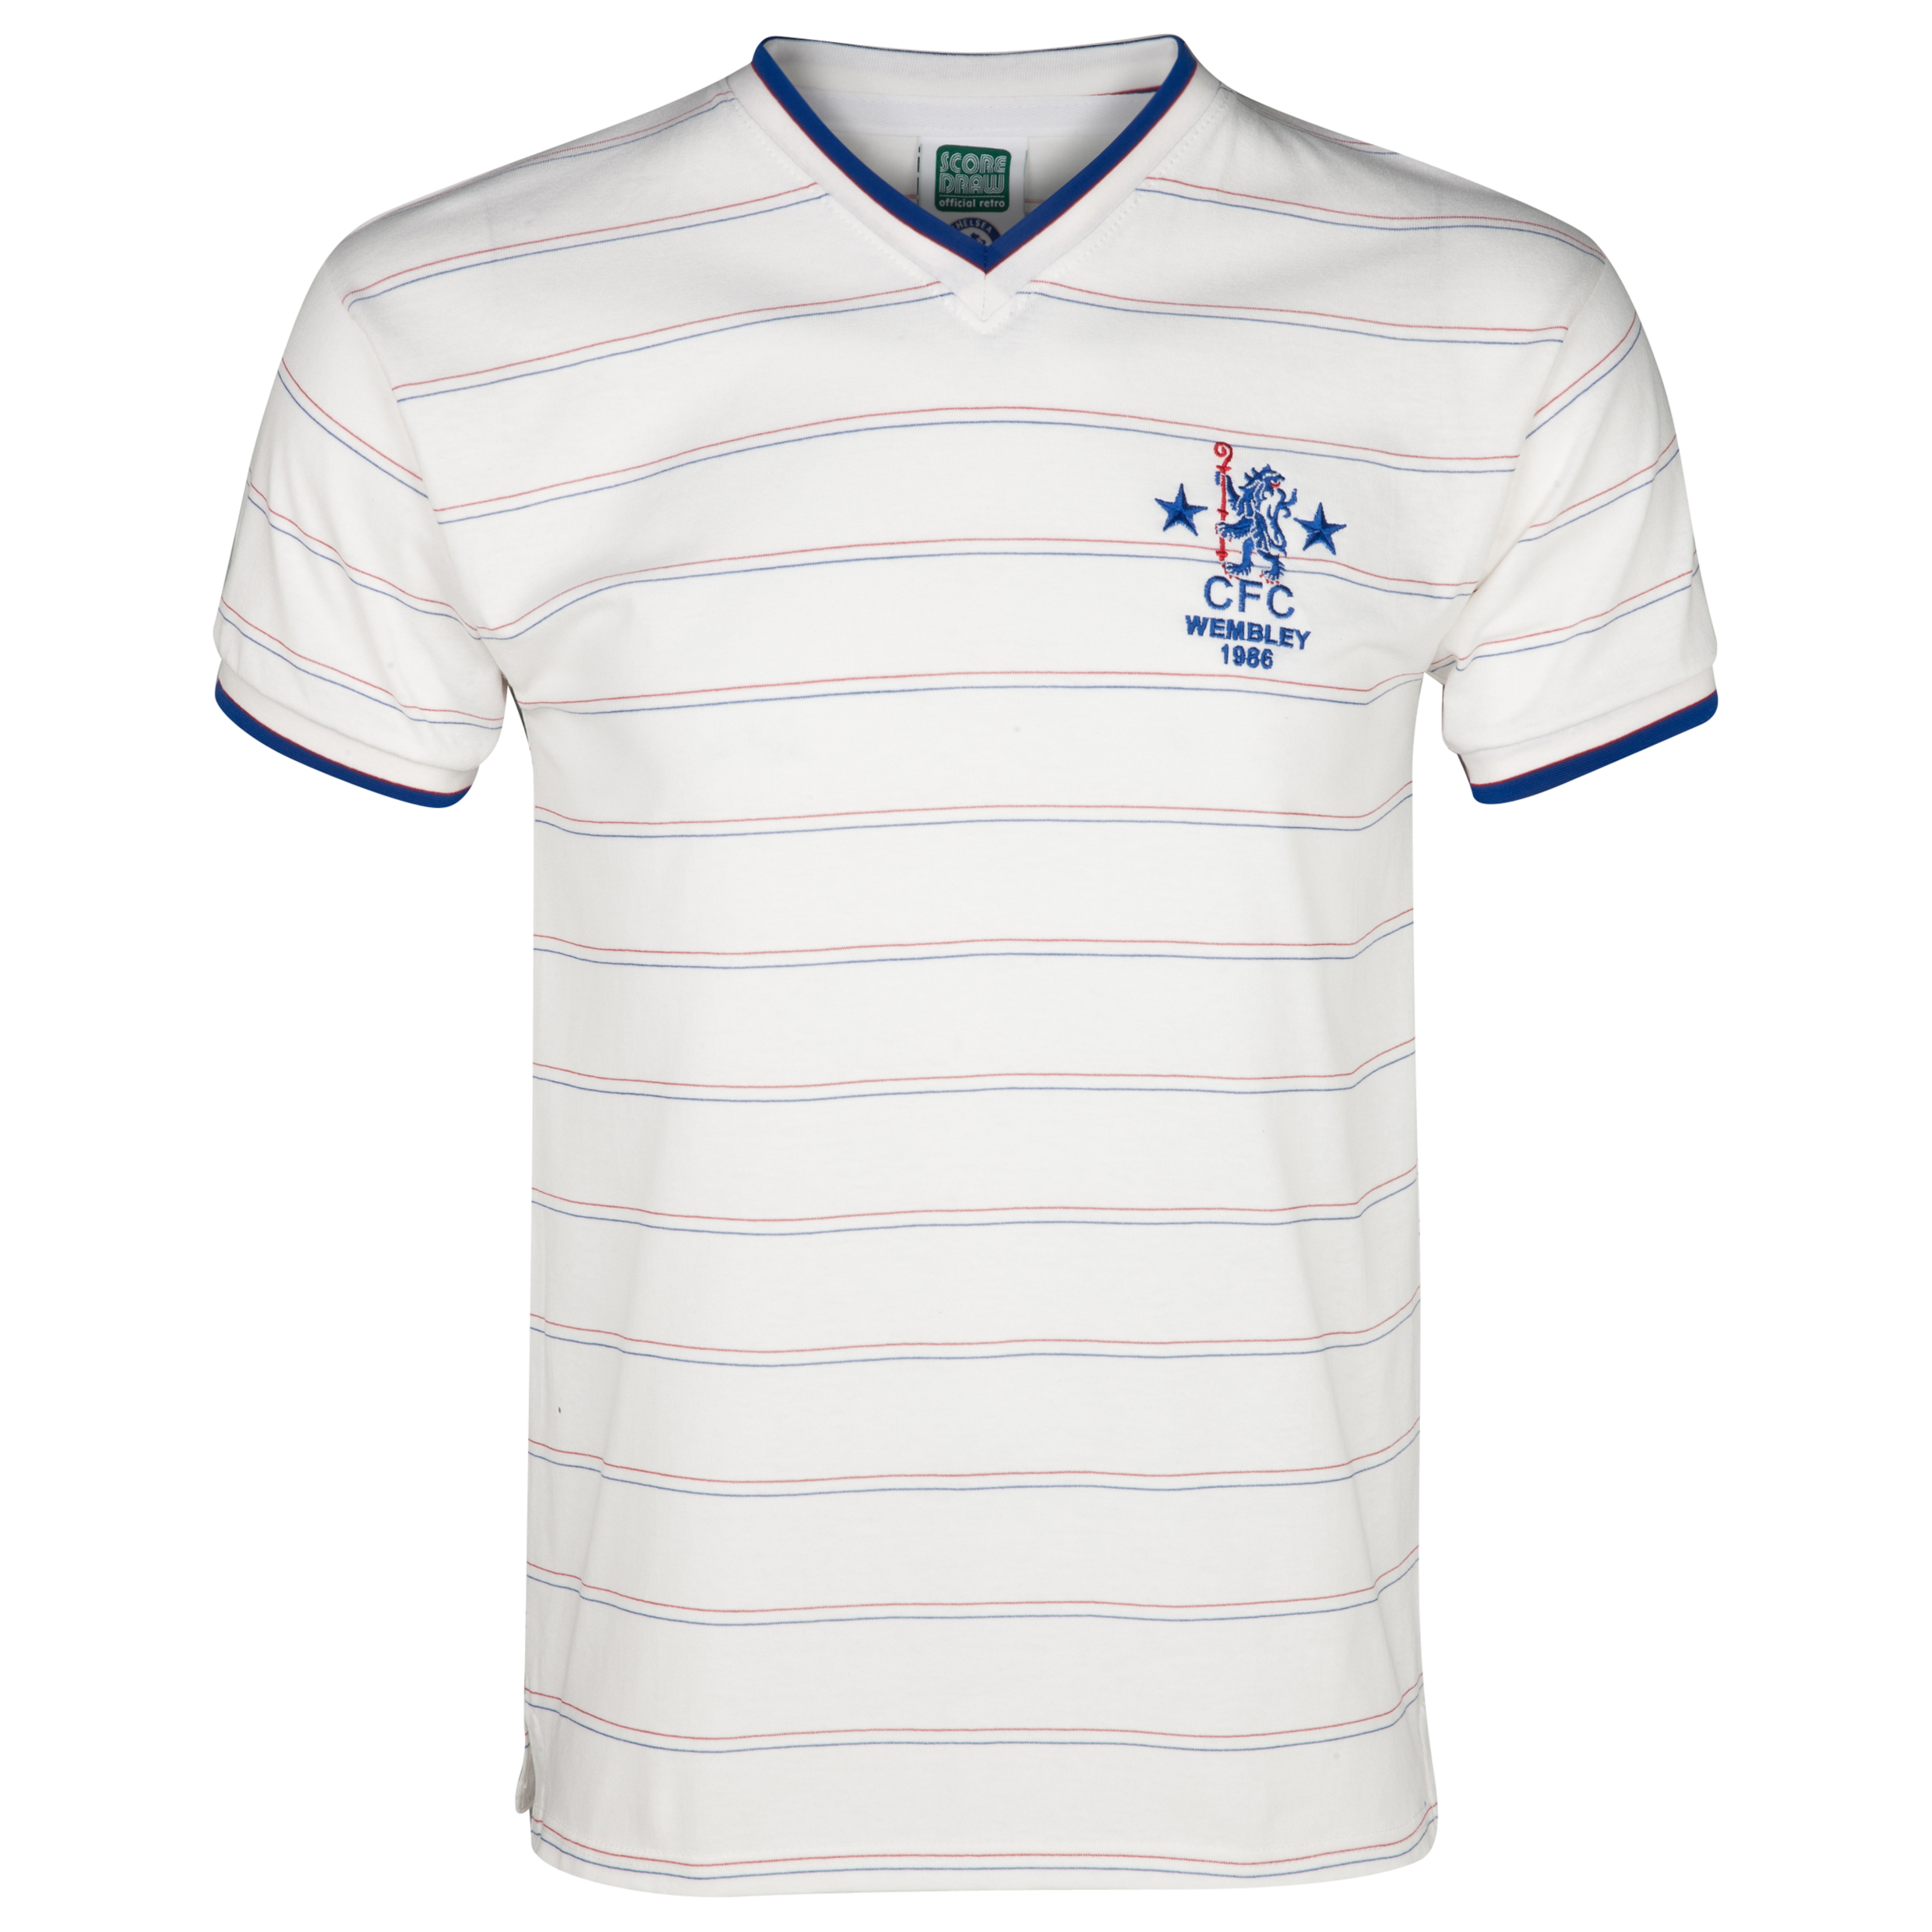 Chelsea 1986 Full Members Cup Final shirt